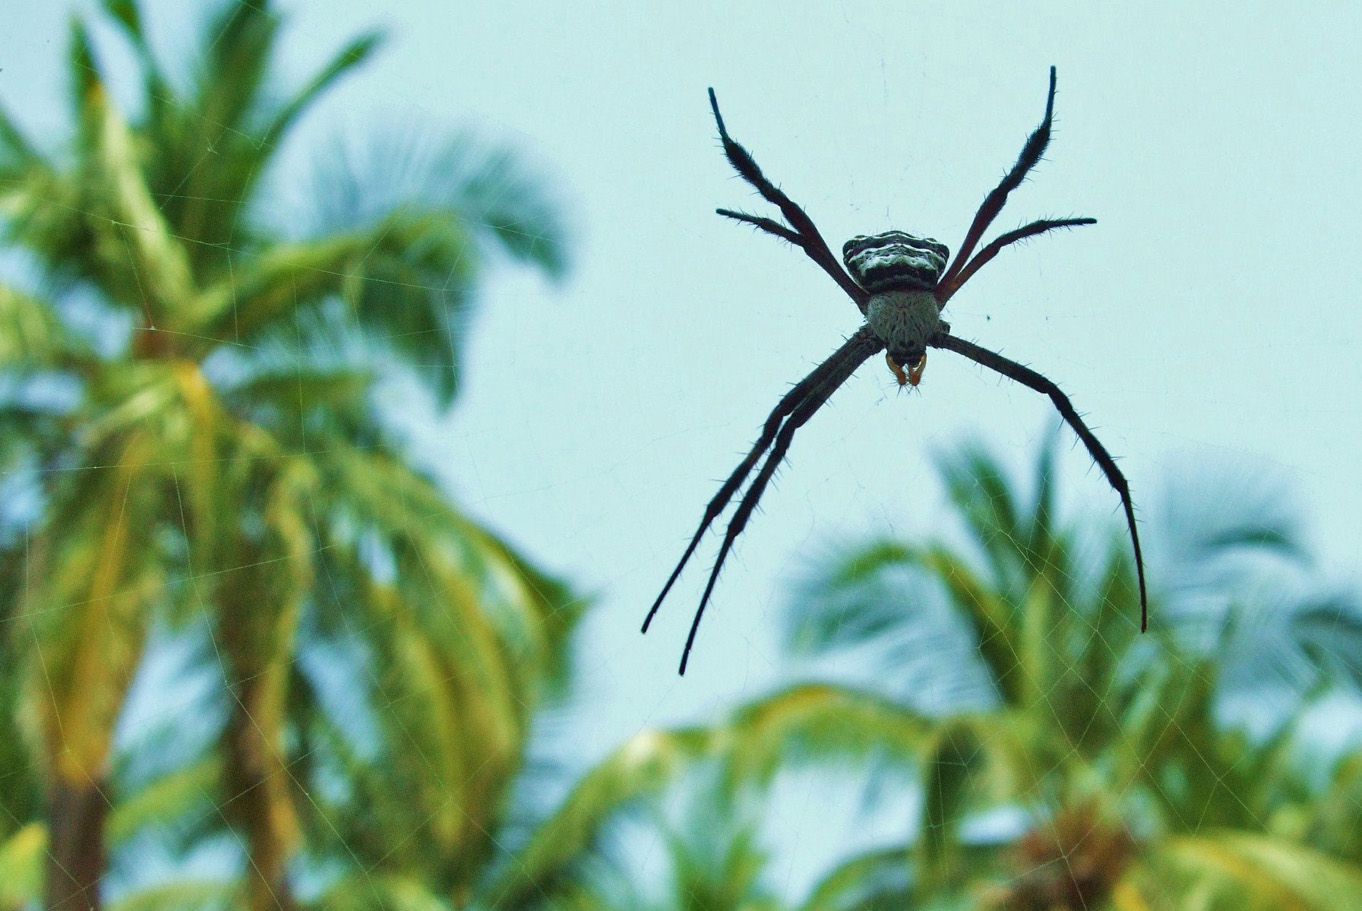 A spider among palms